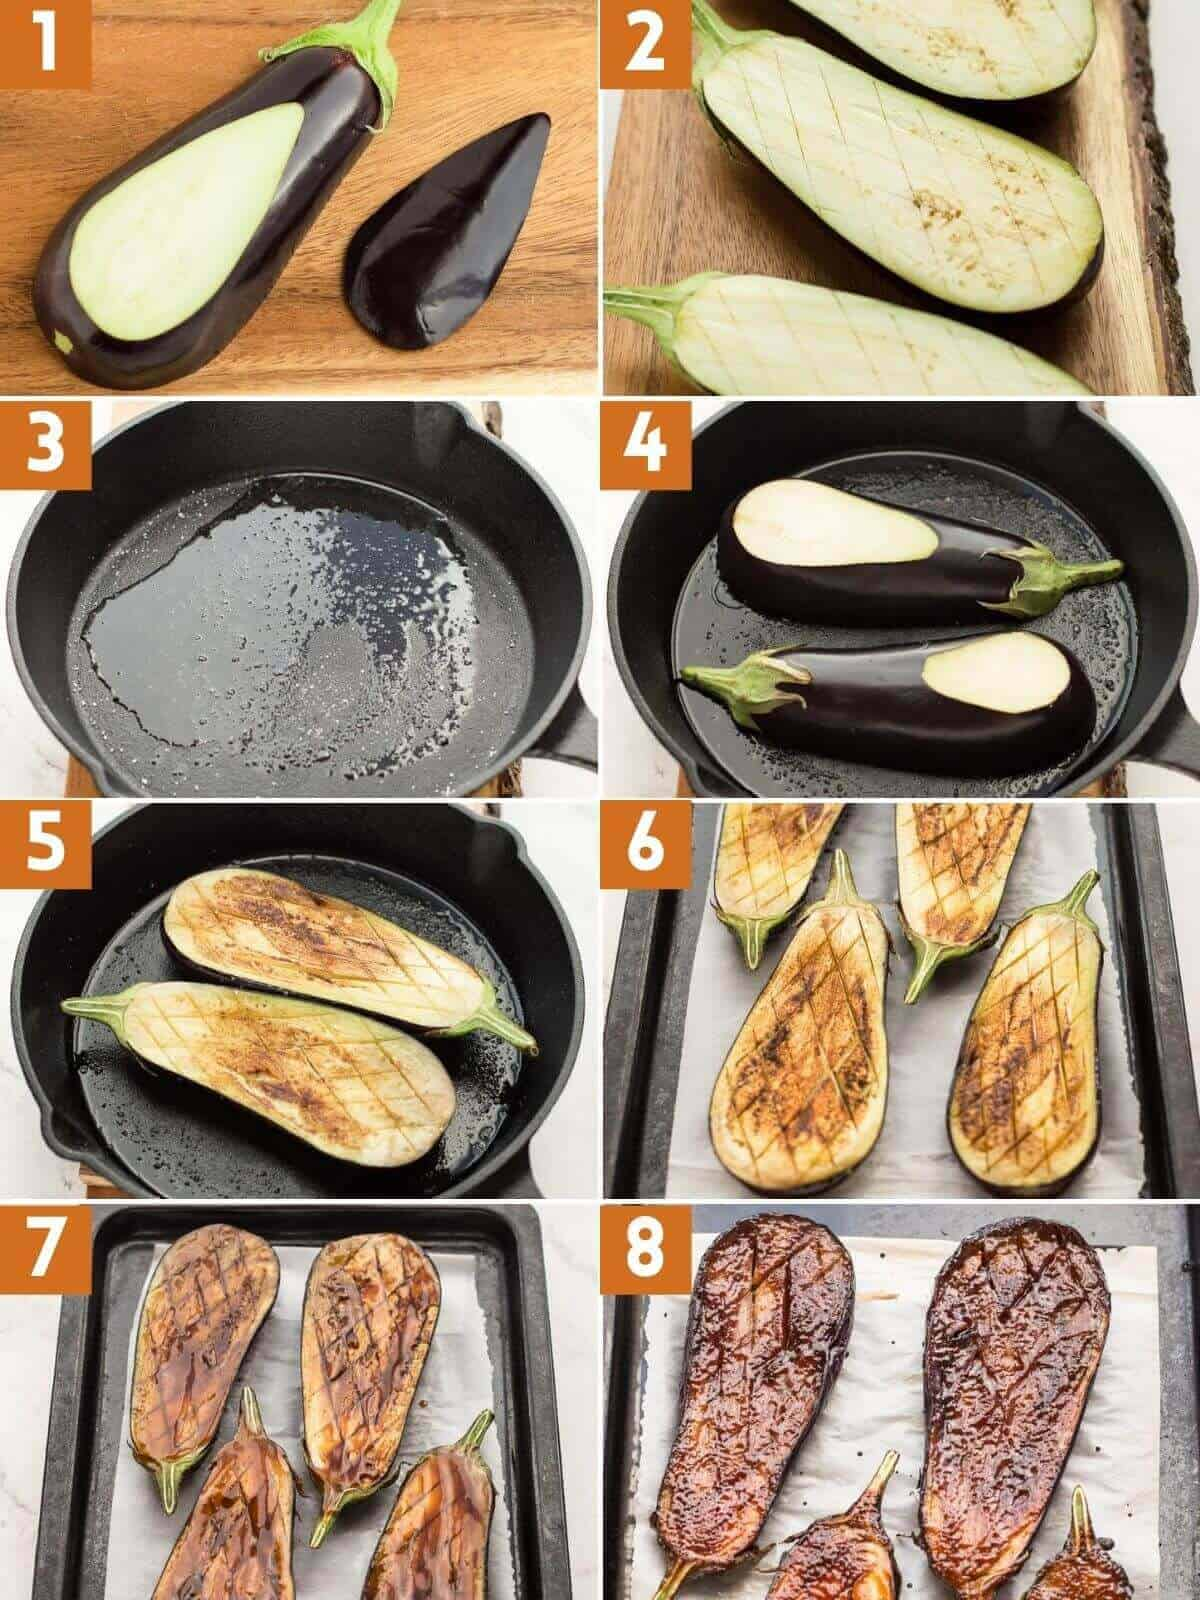 cooking eggplant picture step instructions.